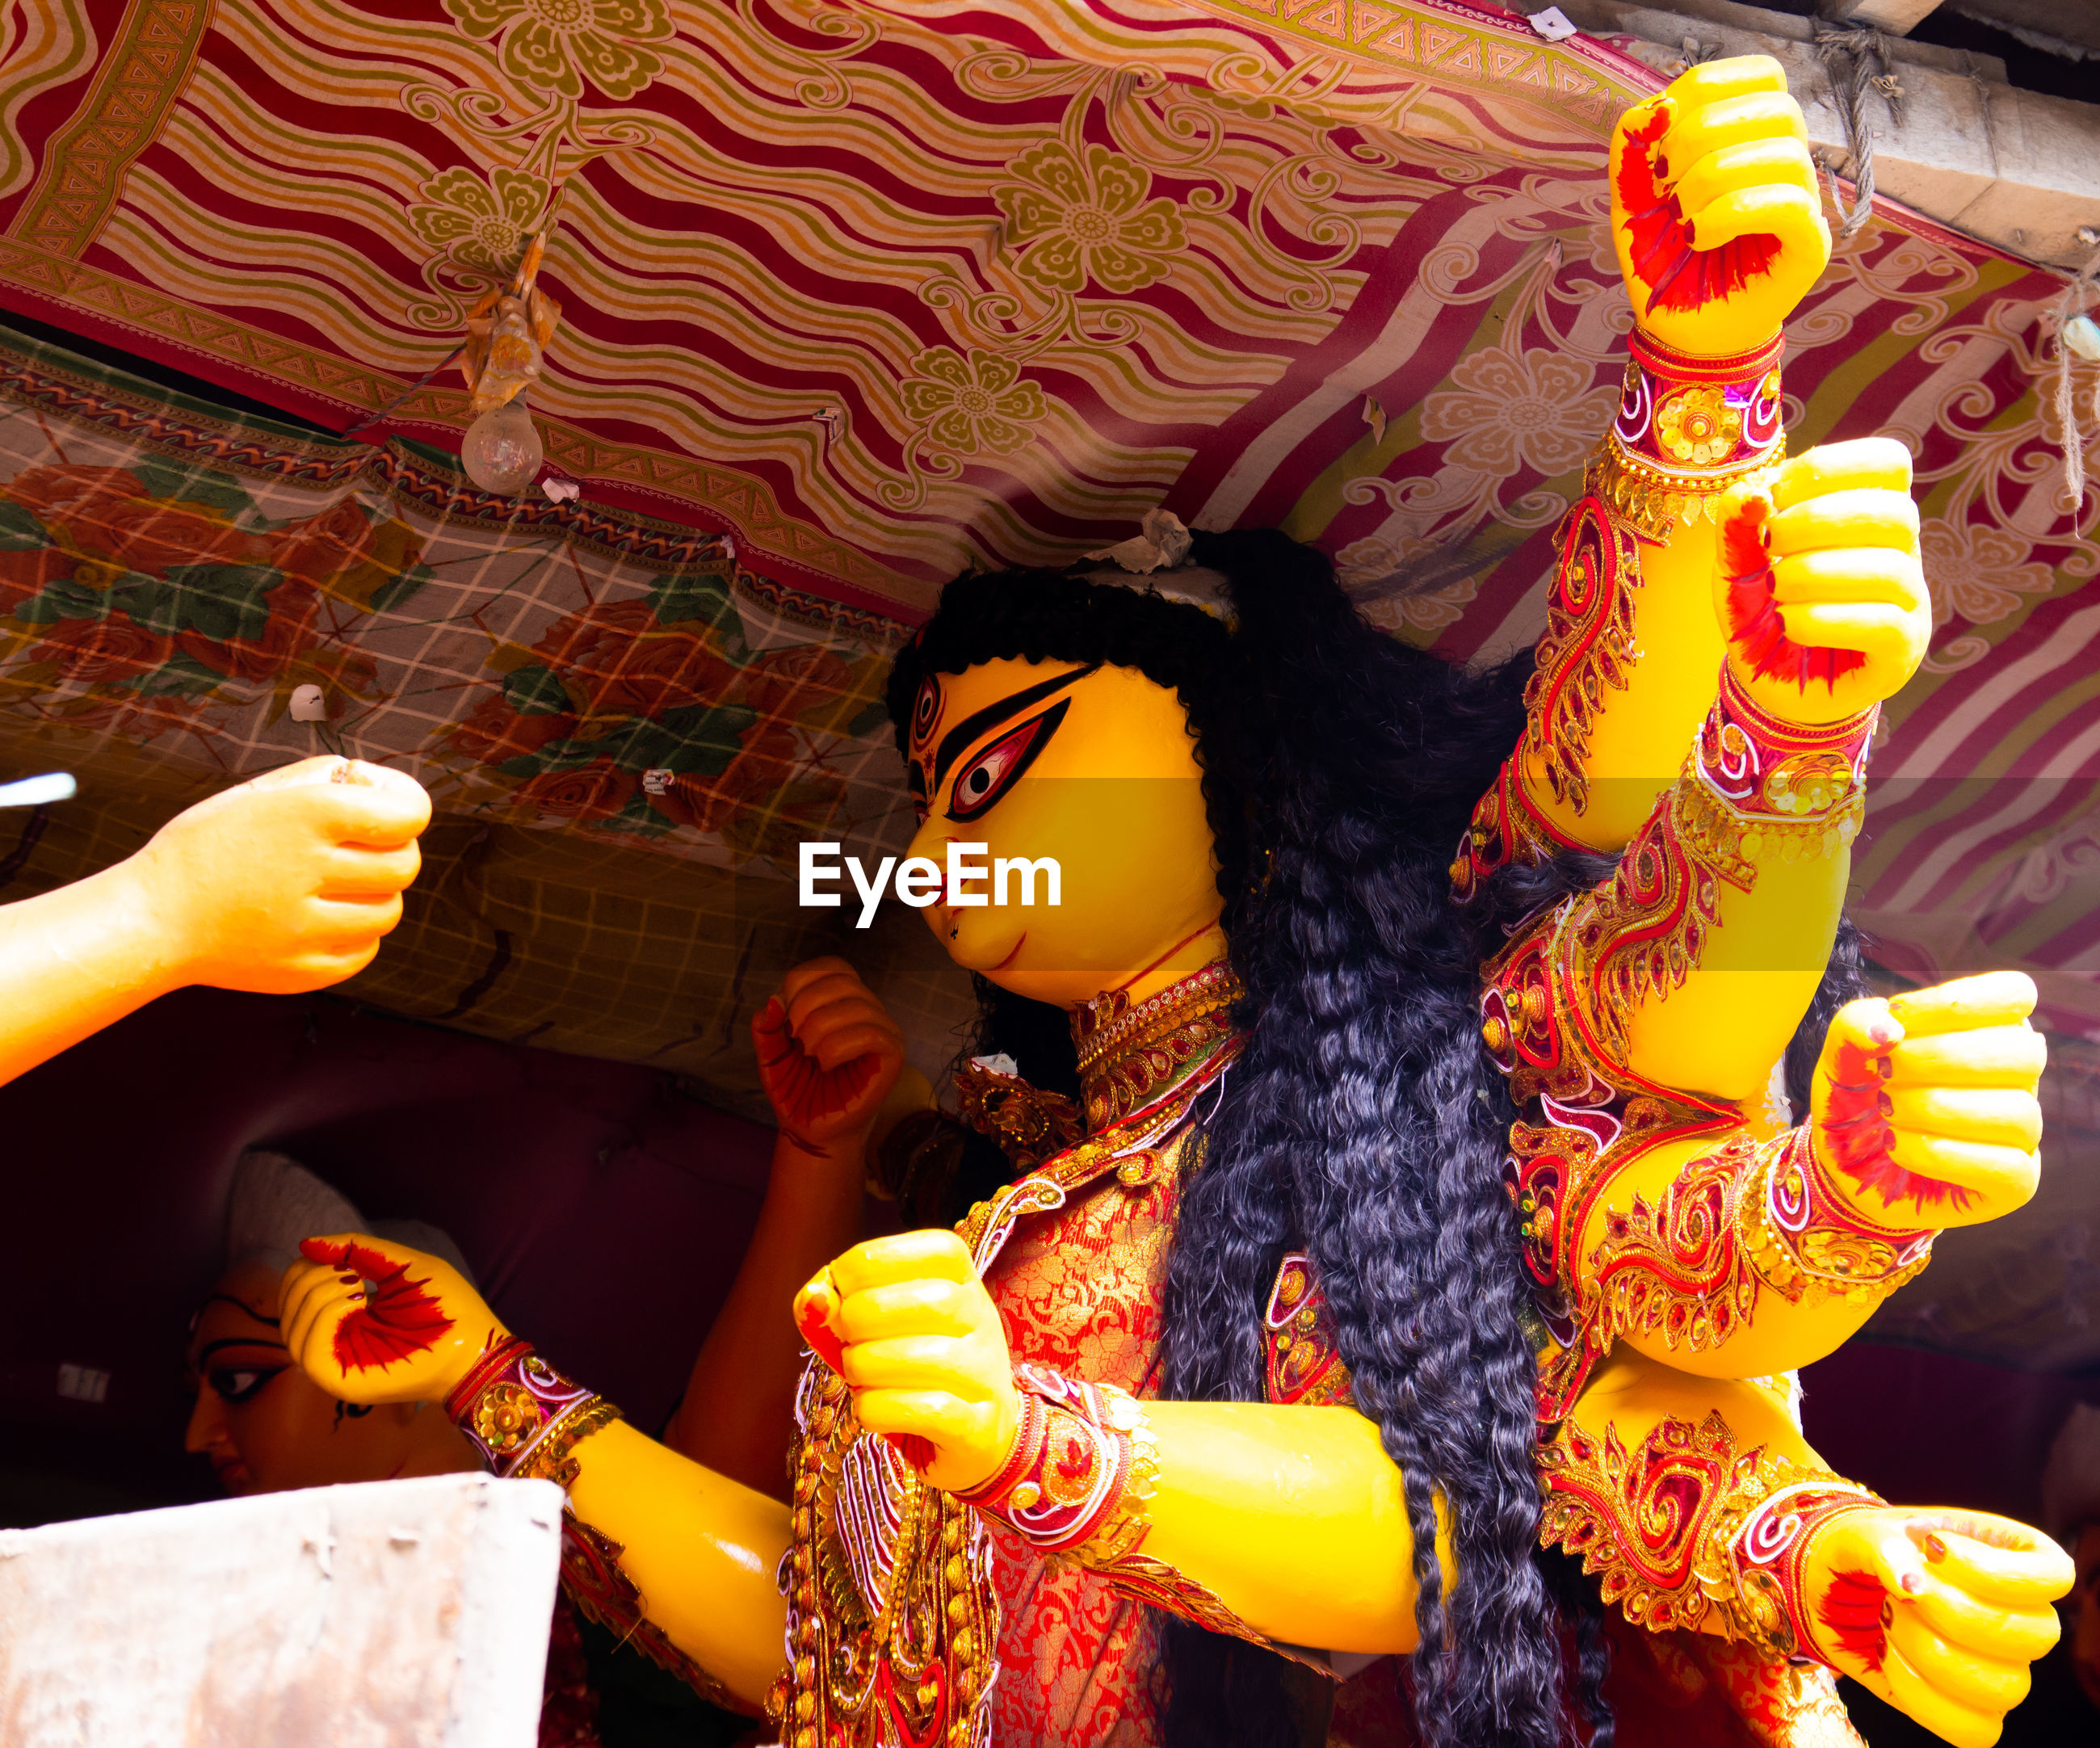 Low angle view of durga statues